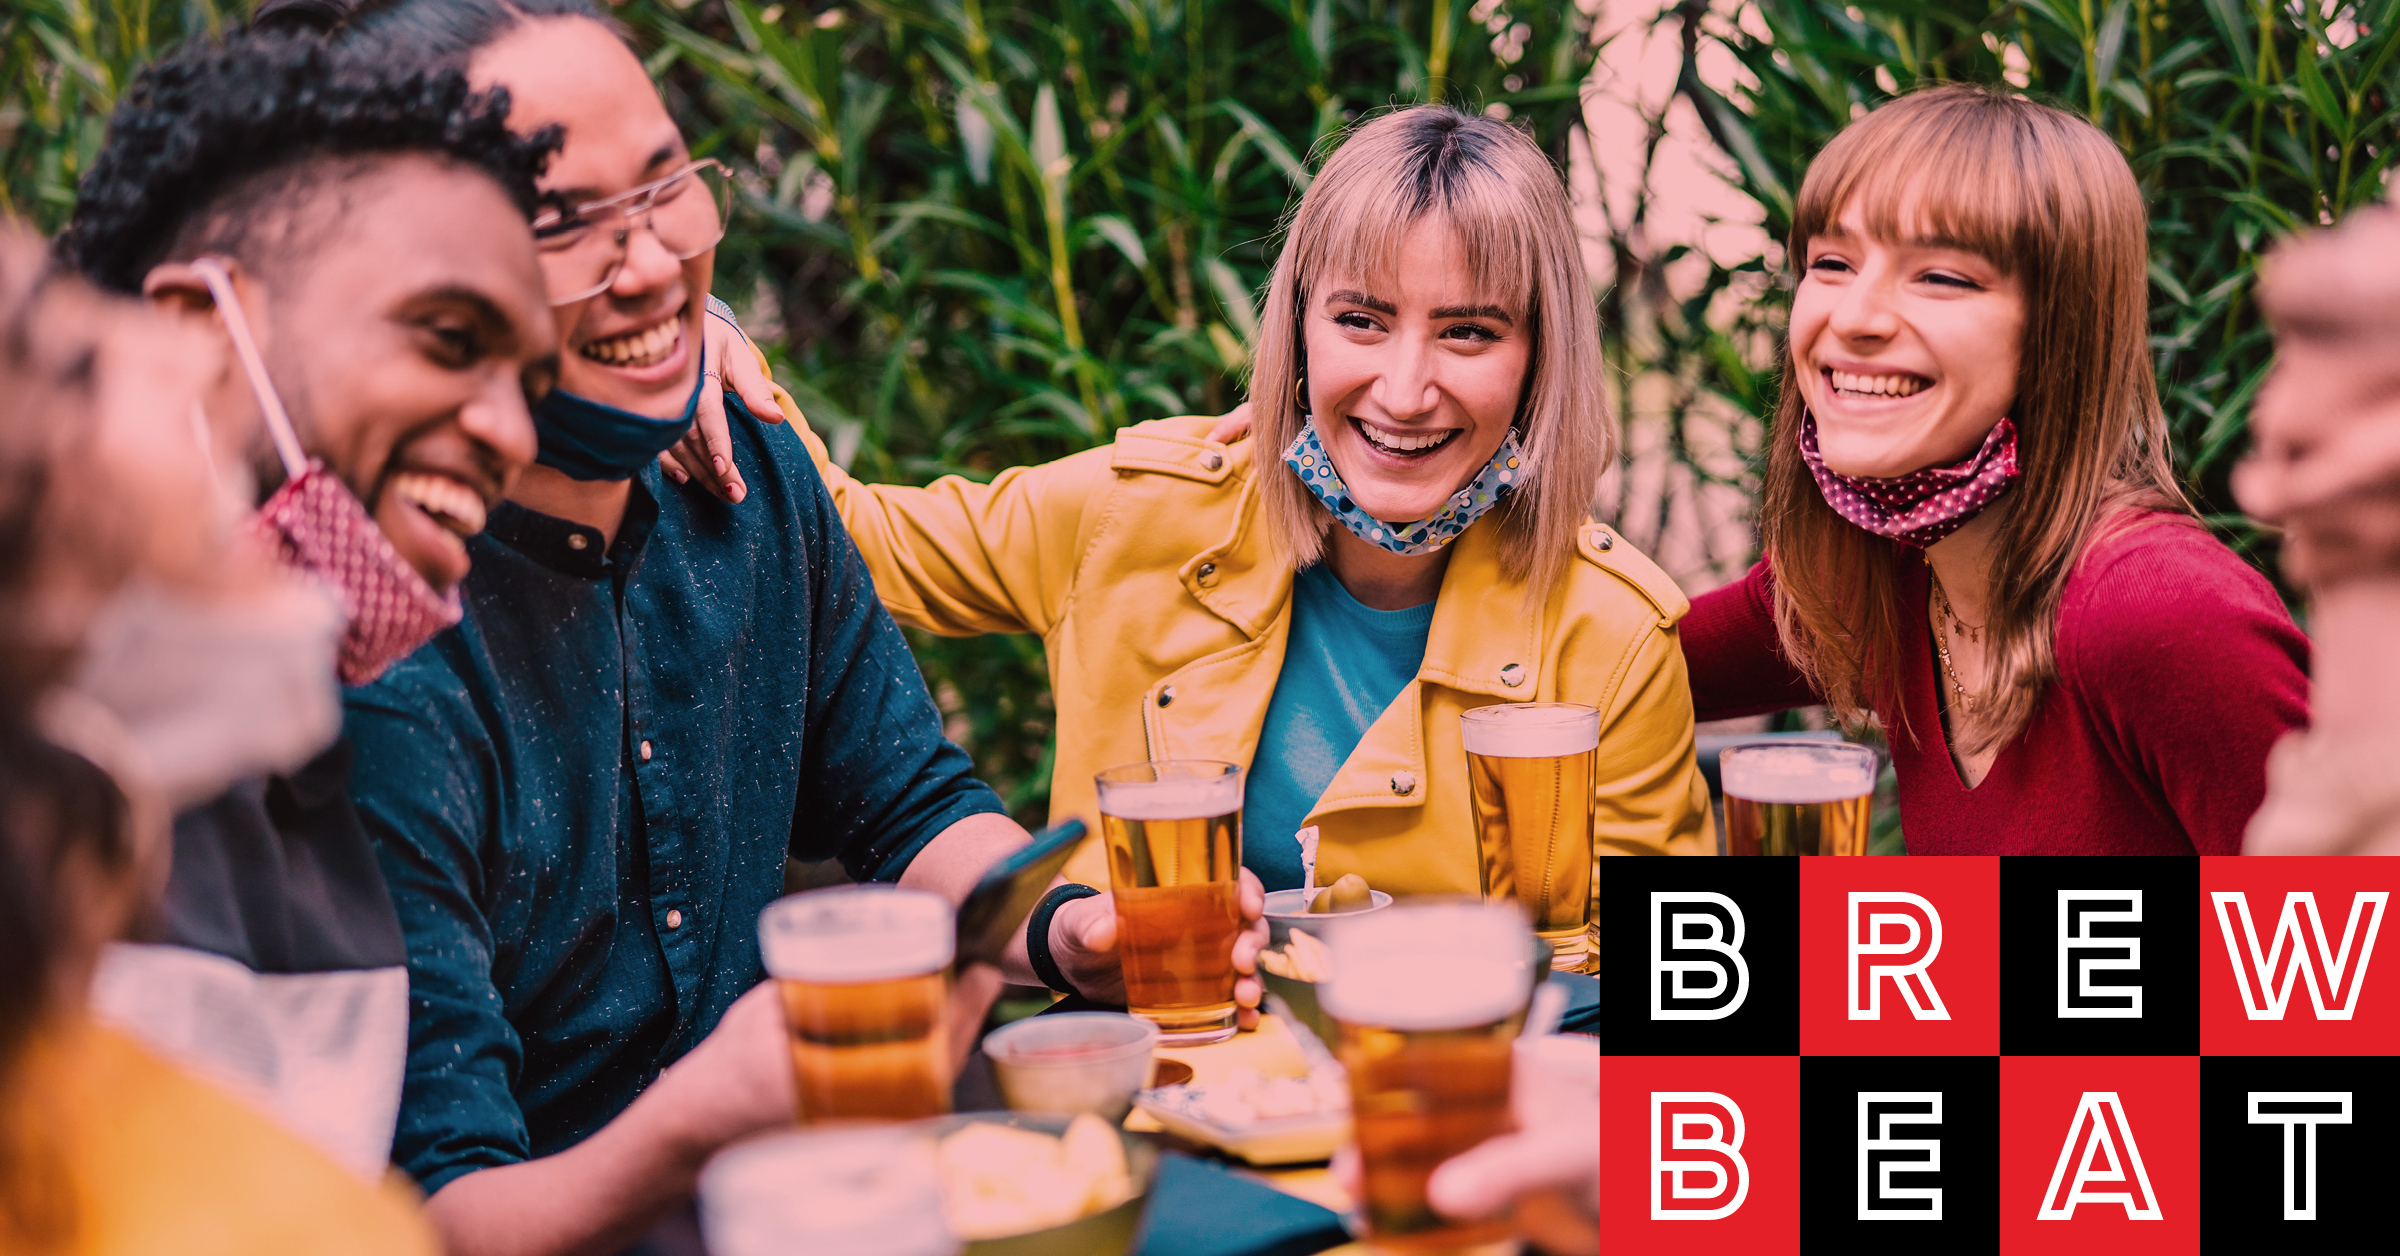 BREW BEAT: LEICESTER'S FIRST CRAFT BEER AND MUSIC FESTIVAL HITS THE STREETS OVER THE AUGUST BANK HOLIDAY